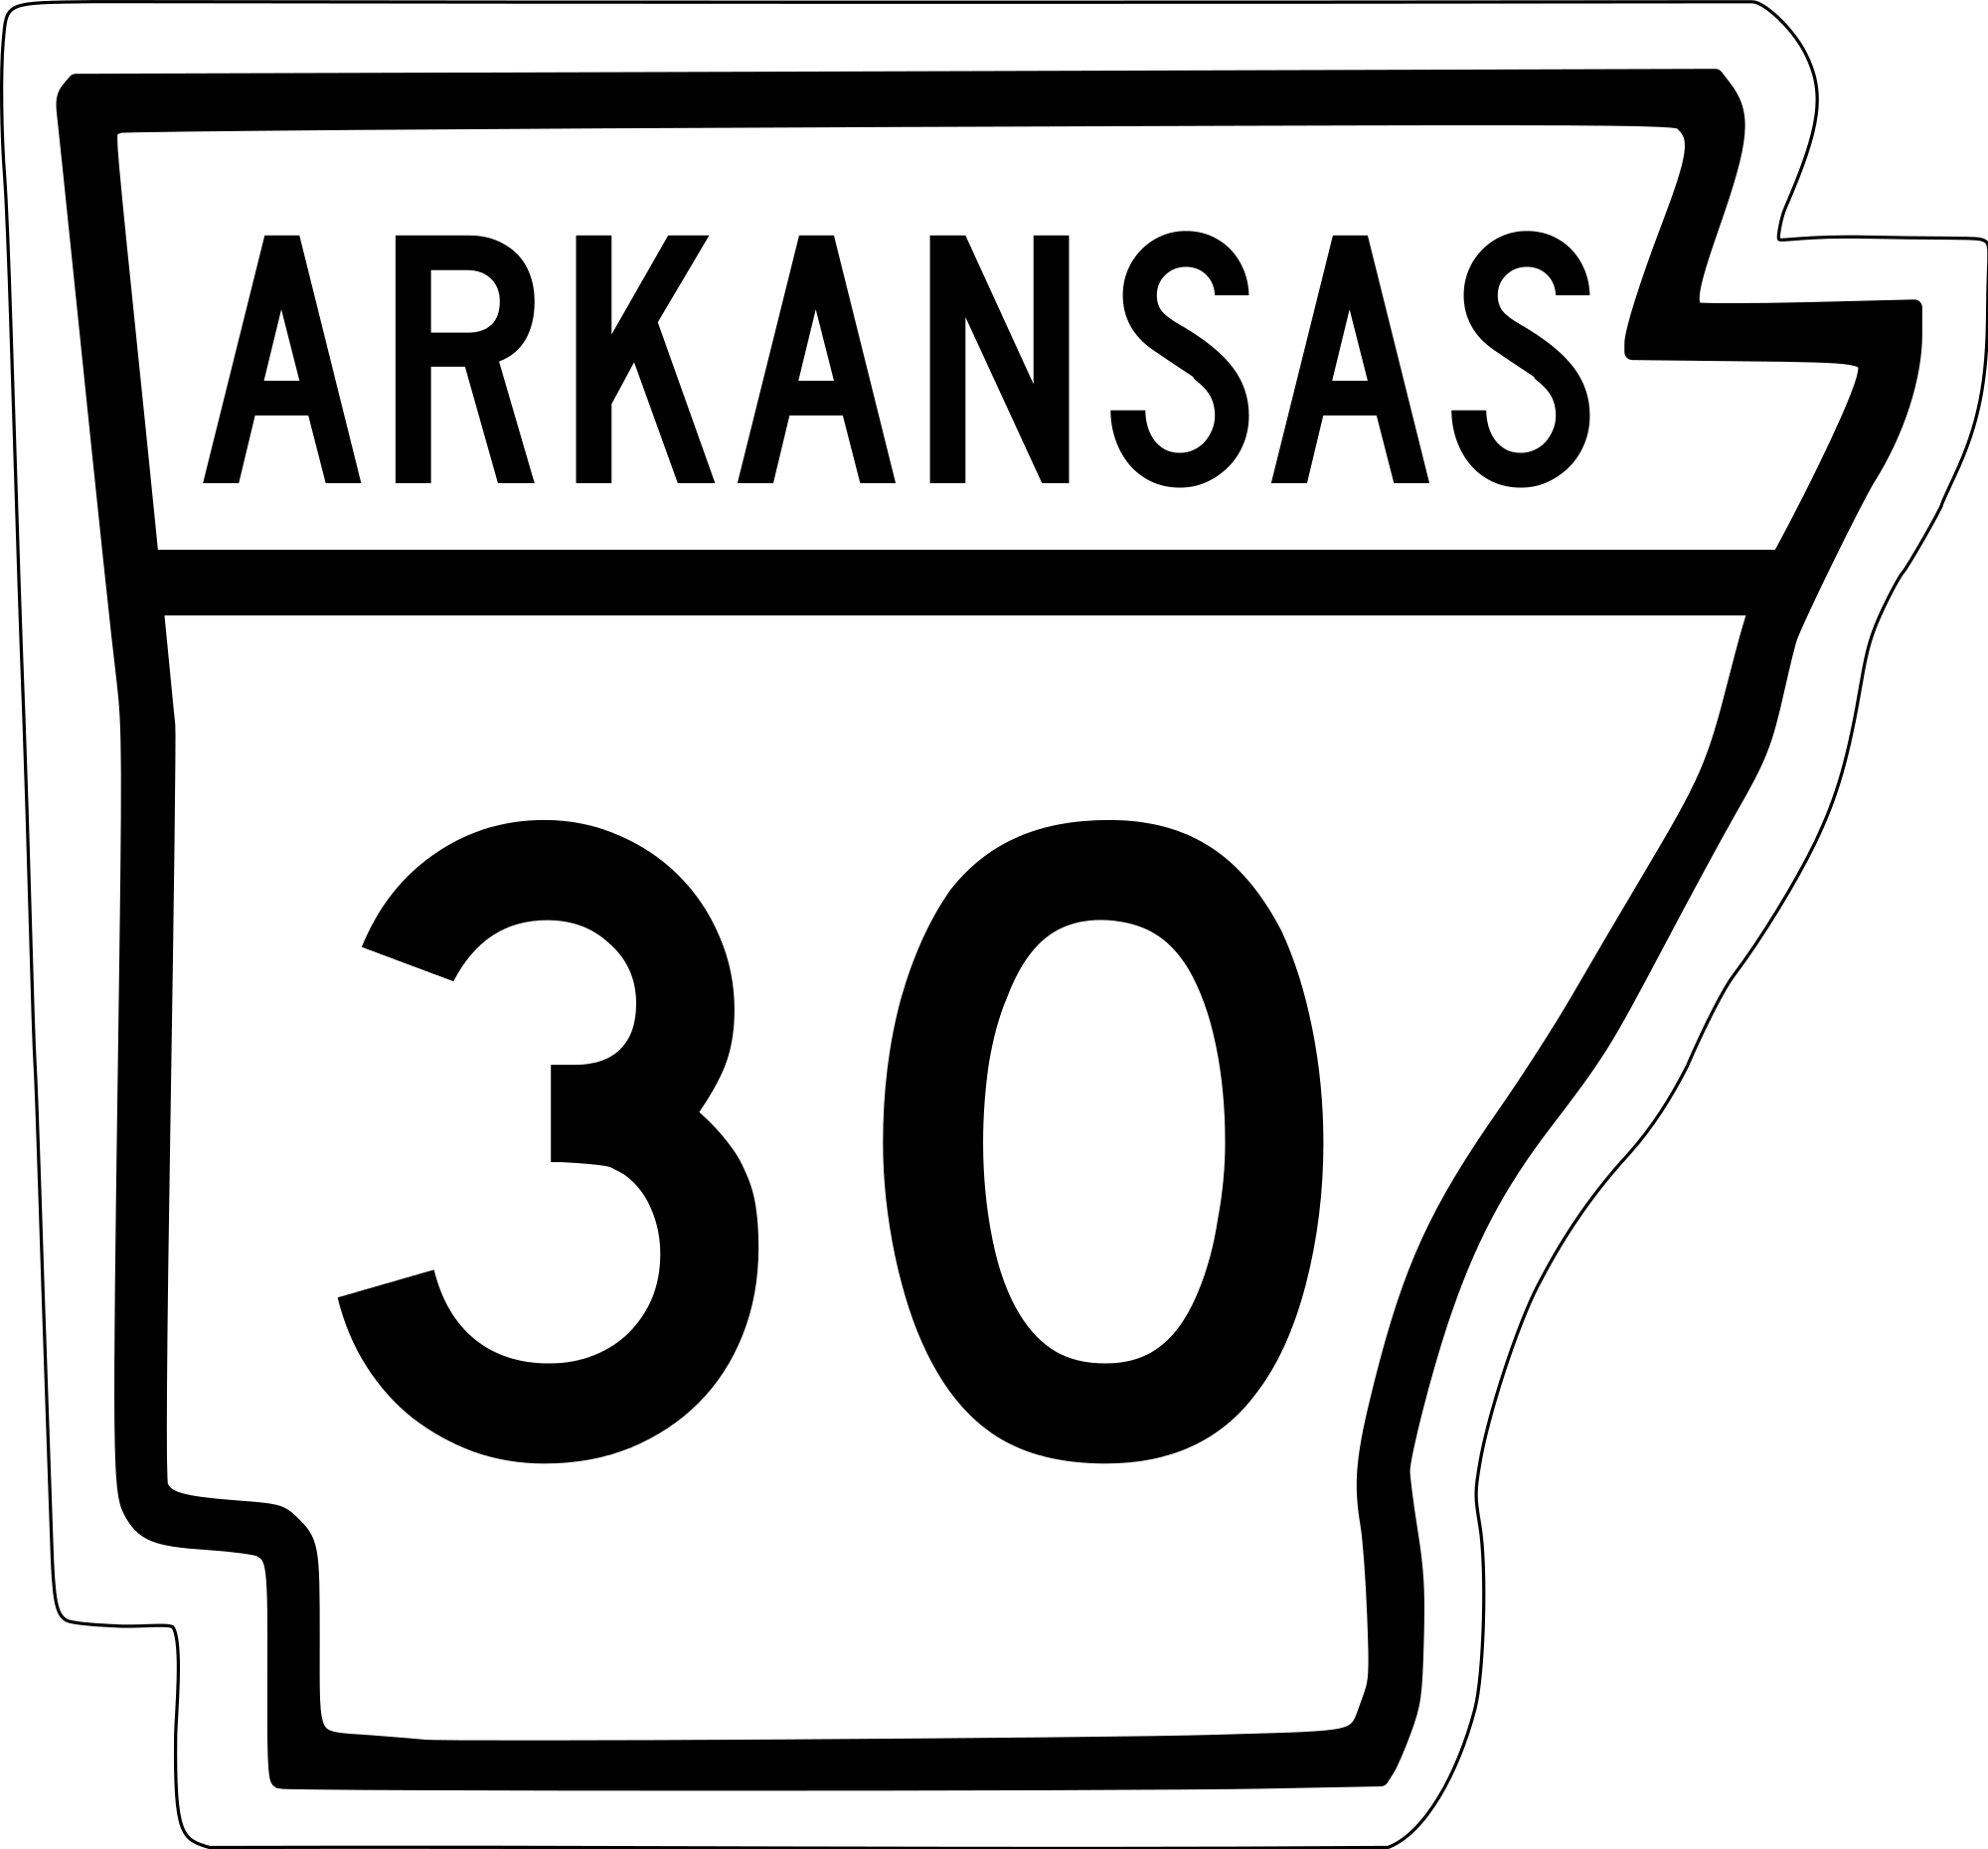 Arkansas svg shape. File wikimedia commons open